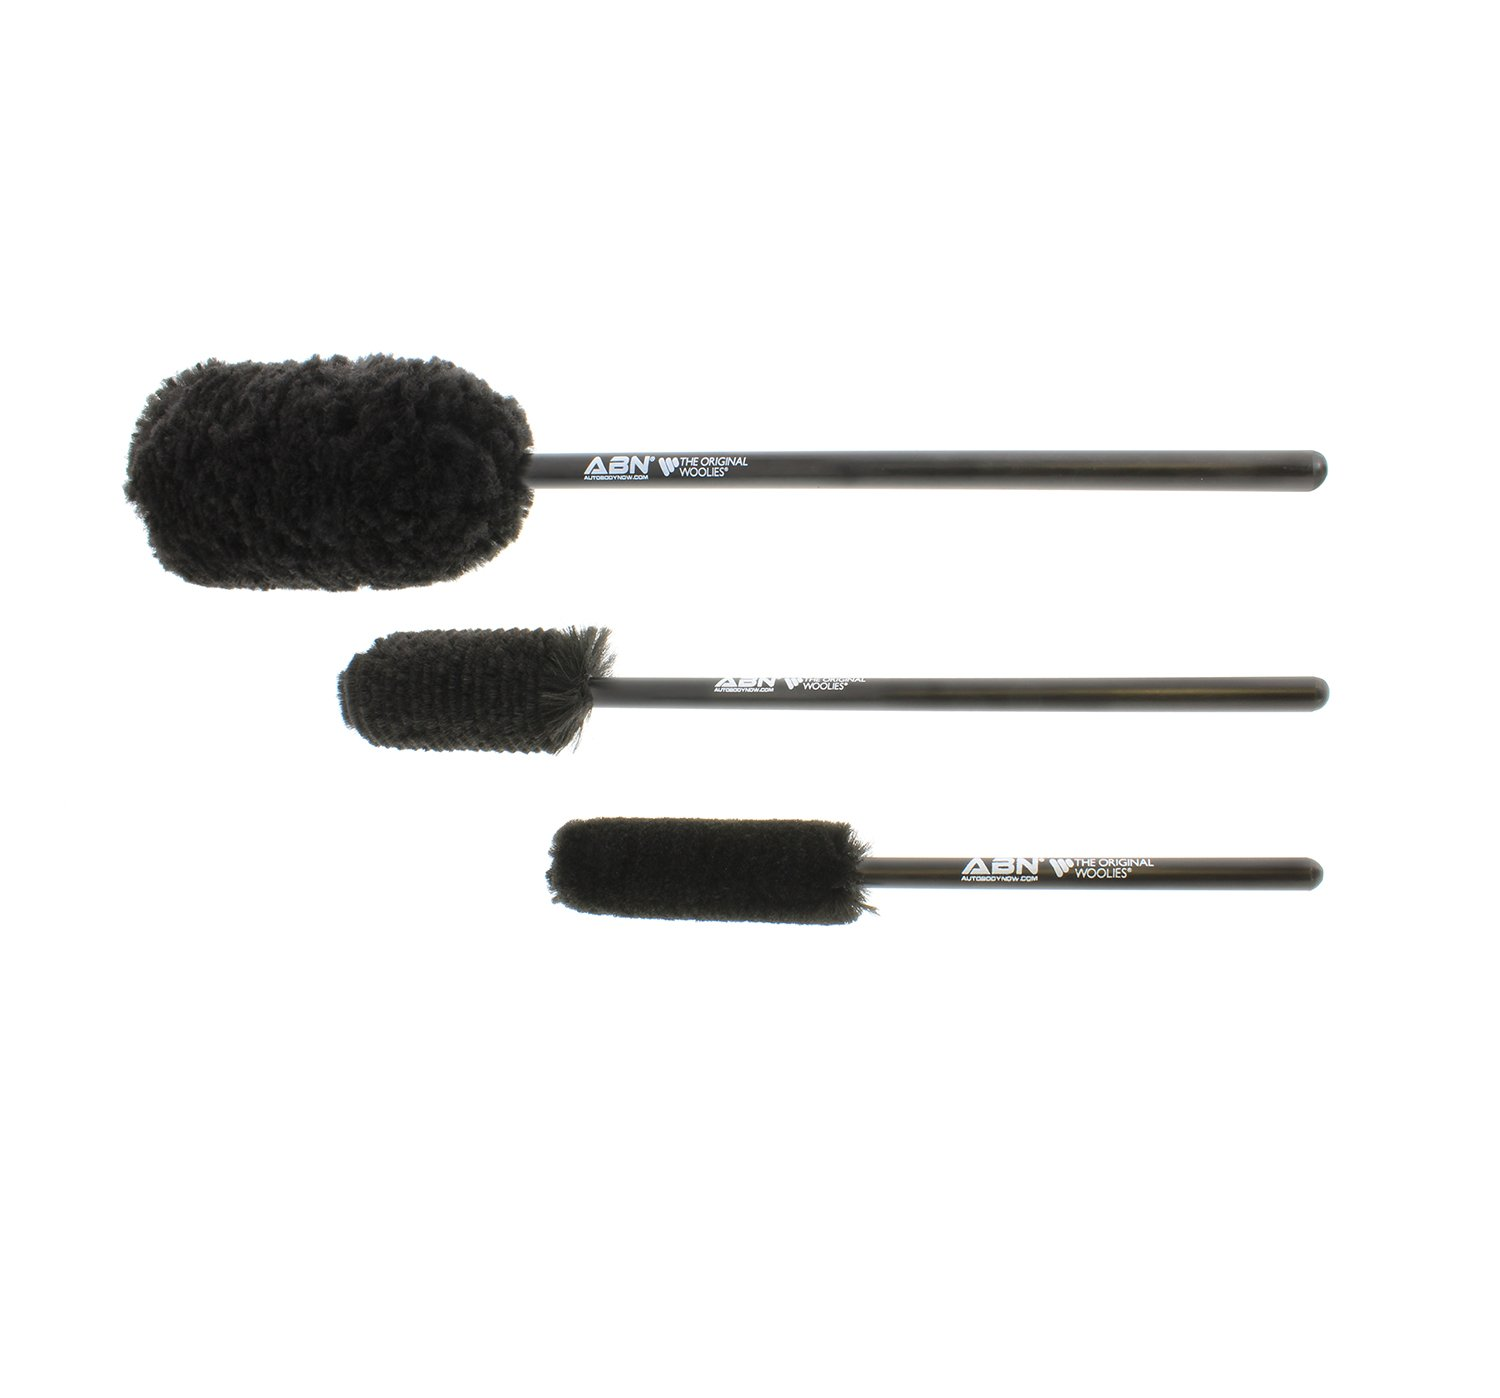 ABN Car Wheel Rim Cleaning 3-Piece Kit – Wheel Woolies Brush Stick Tool – Tire Woolie – Wooly Wand Set (3 Brushes) by ABN (Image #1)